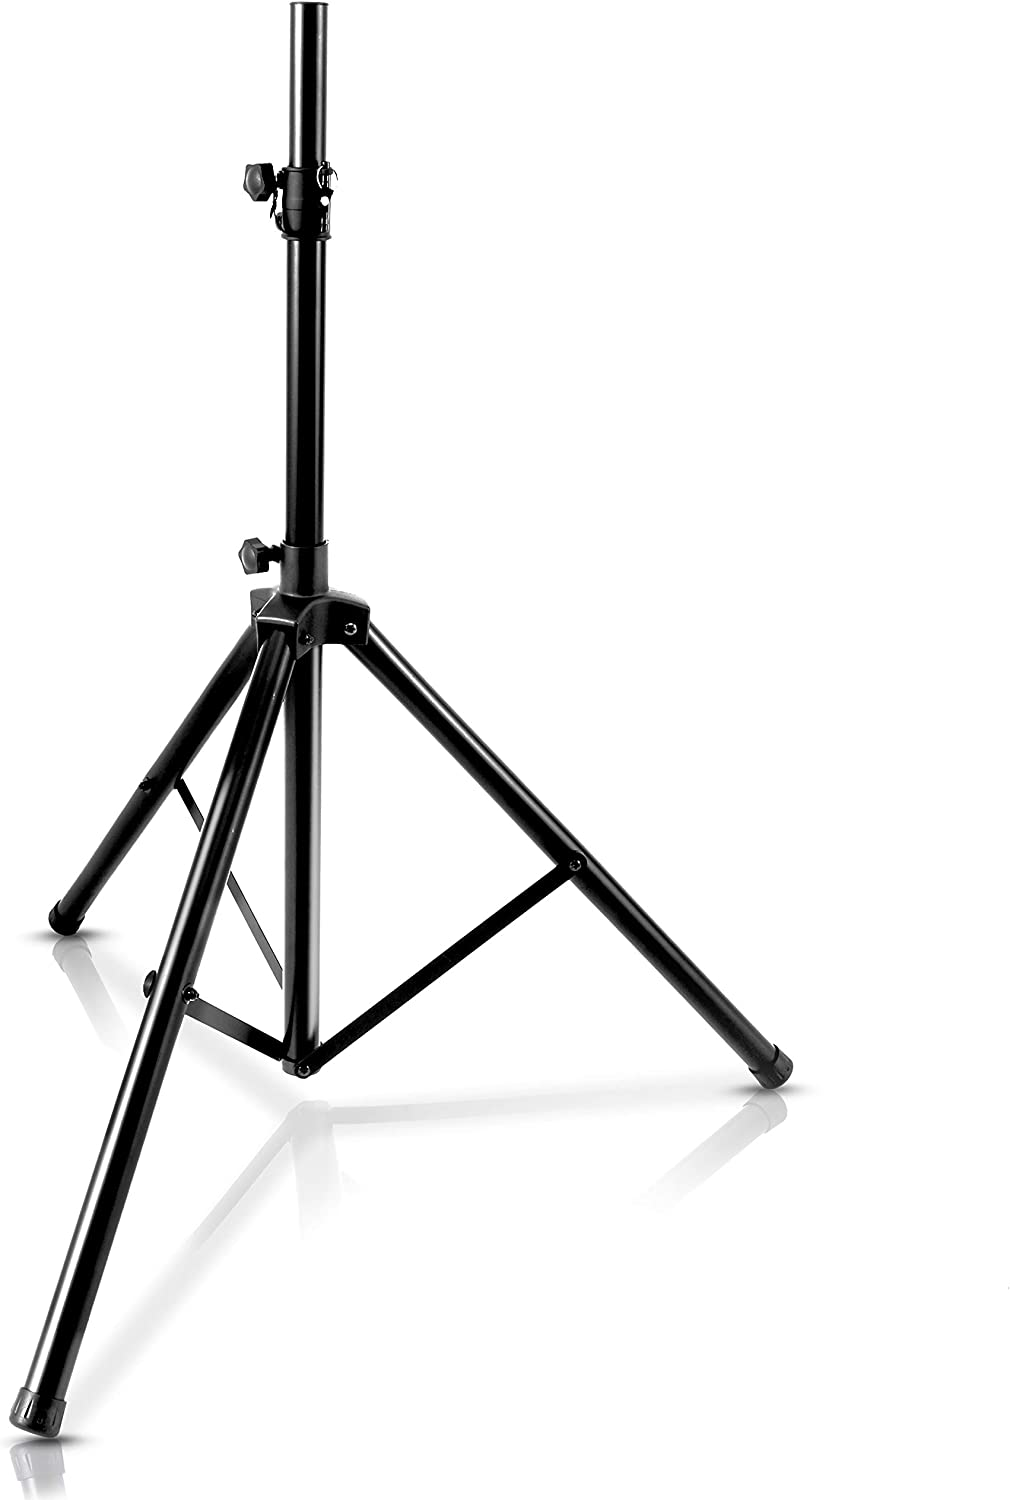 Pyle Universal Speaker Tripod Stand Mount Sound H Equipment Special price Baltimore Mall 6' -